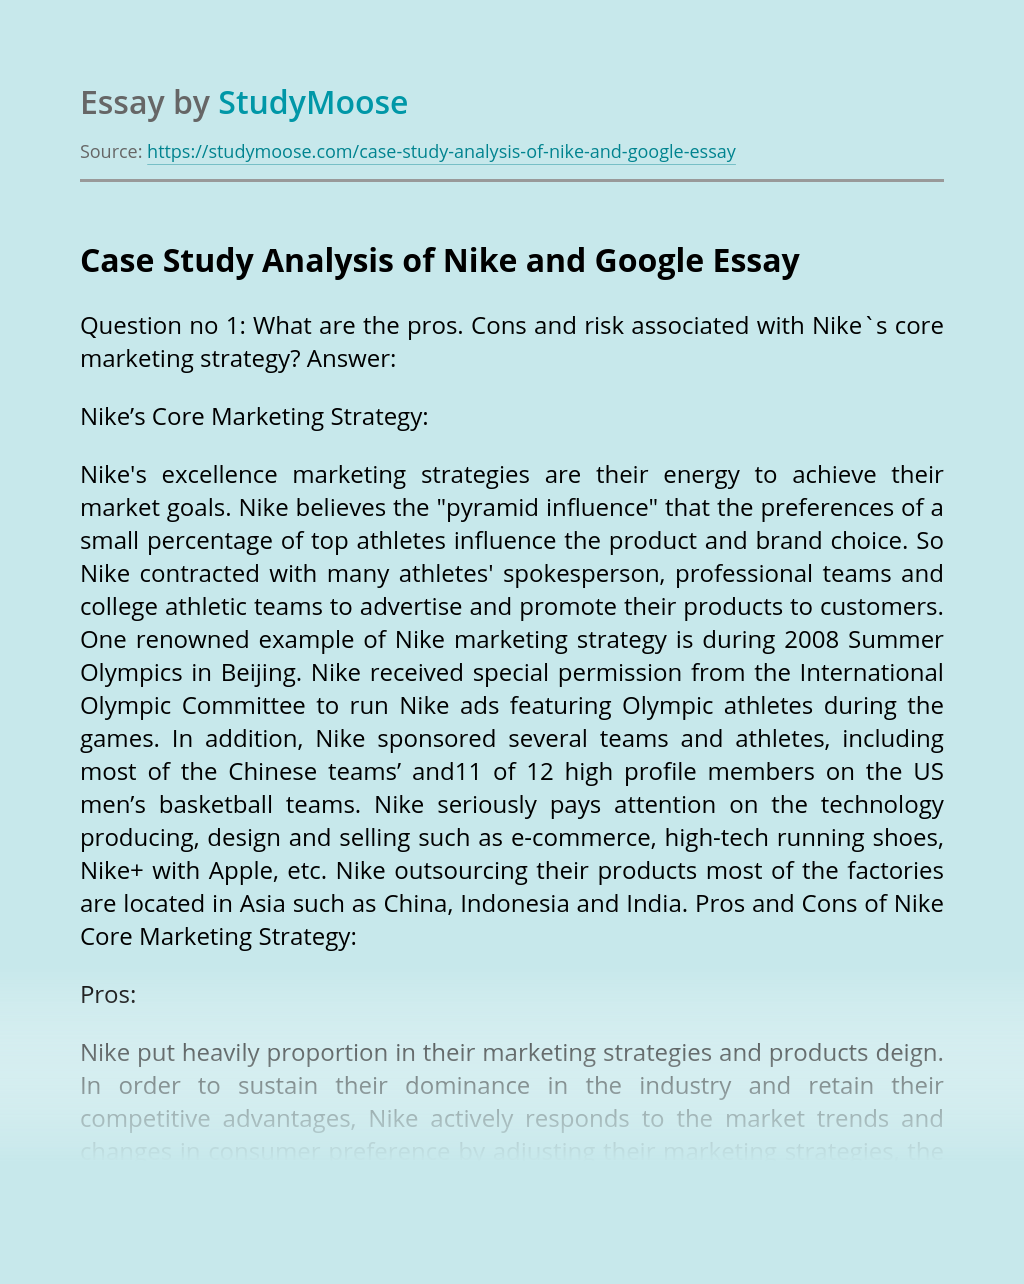 Case Study Analysis of Nike and Google